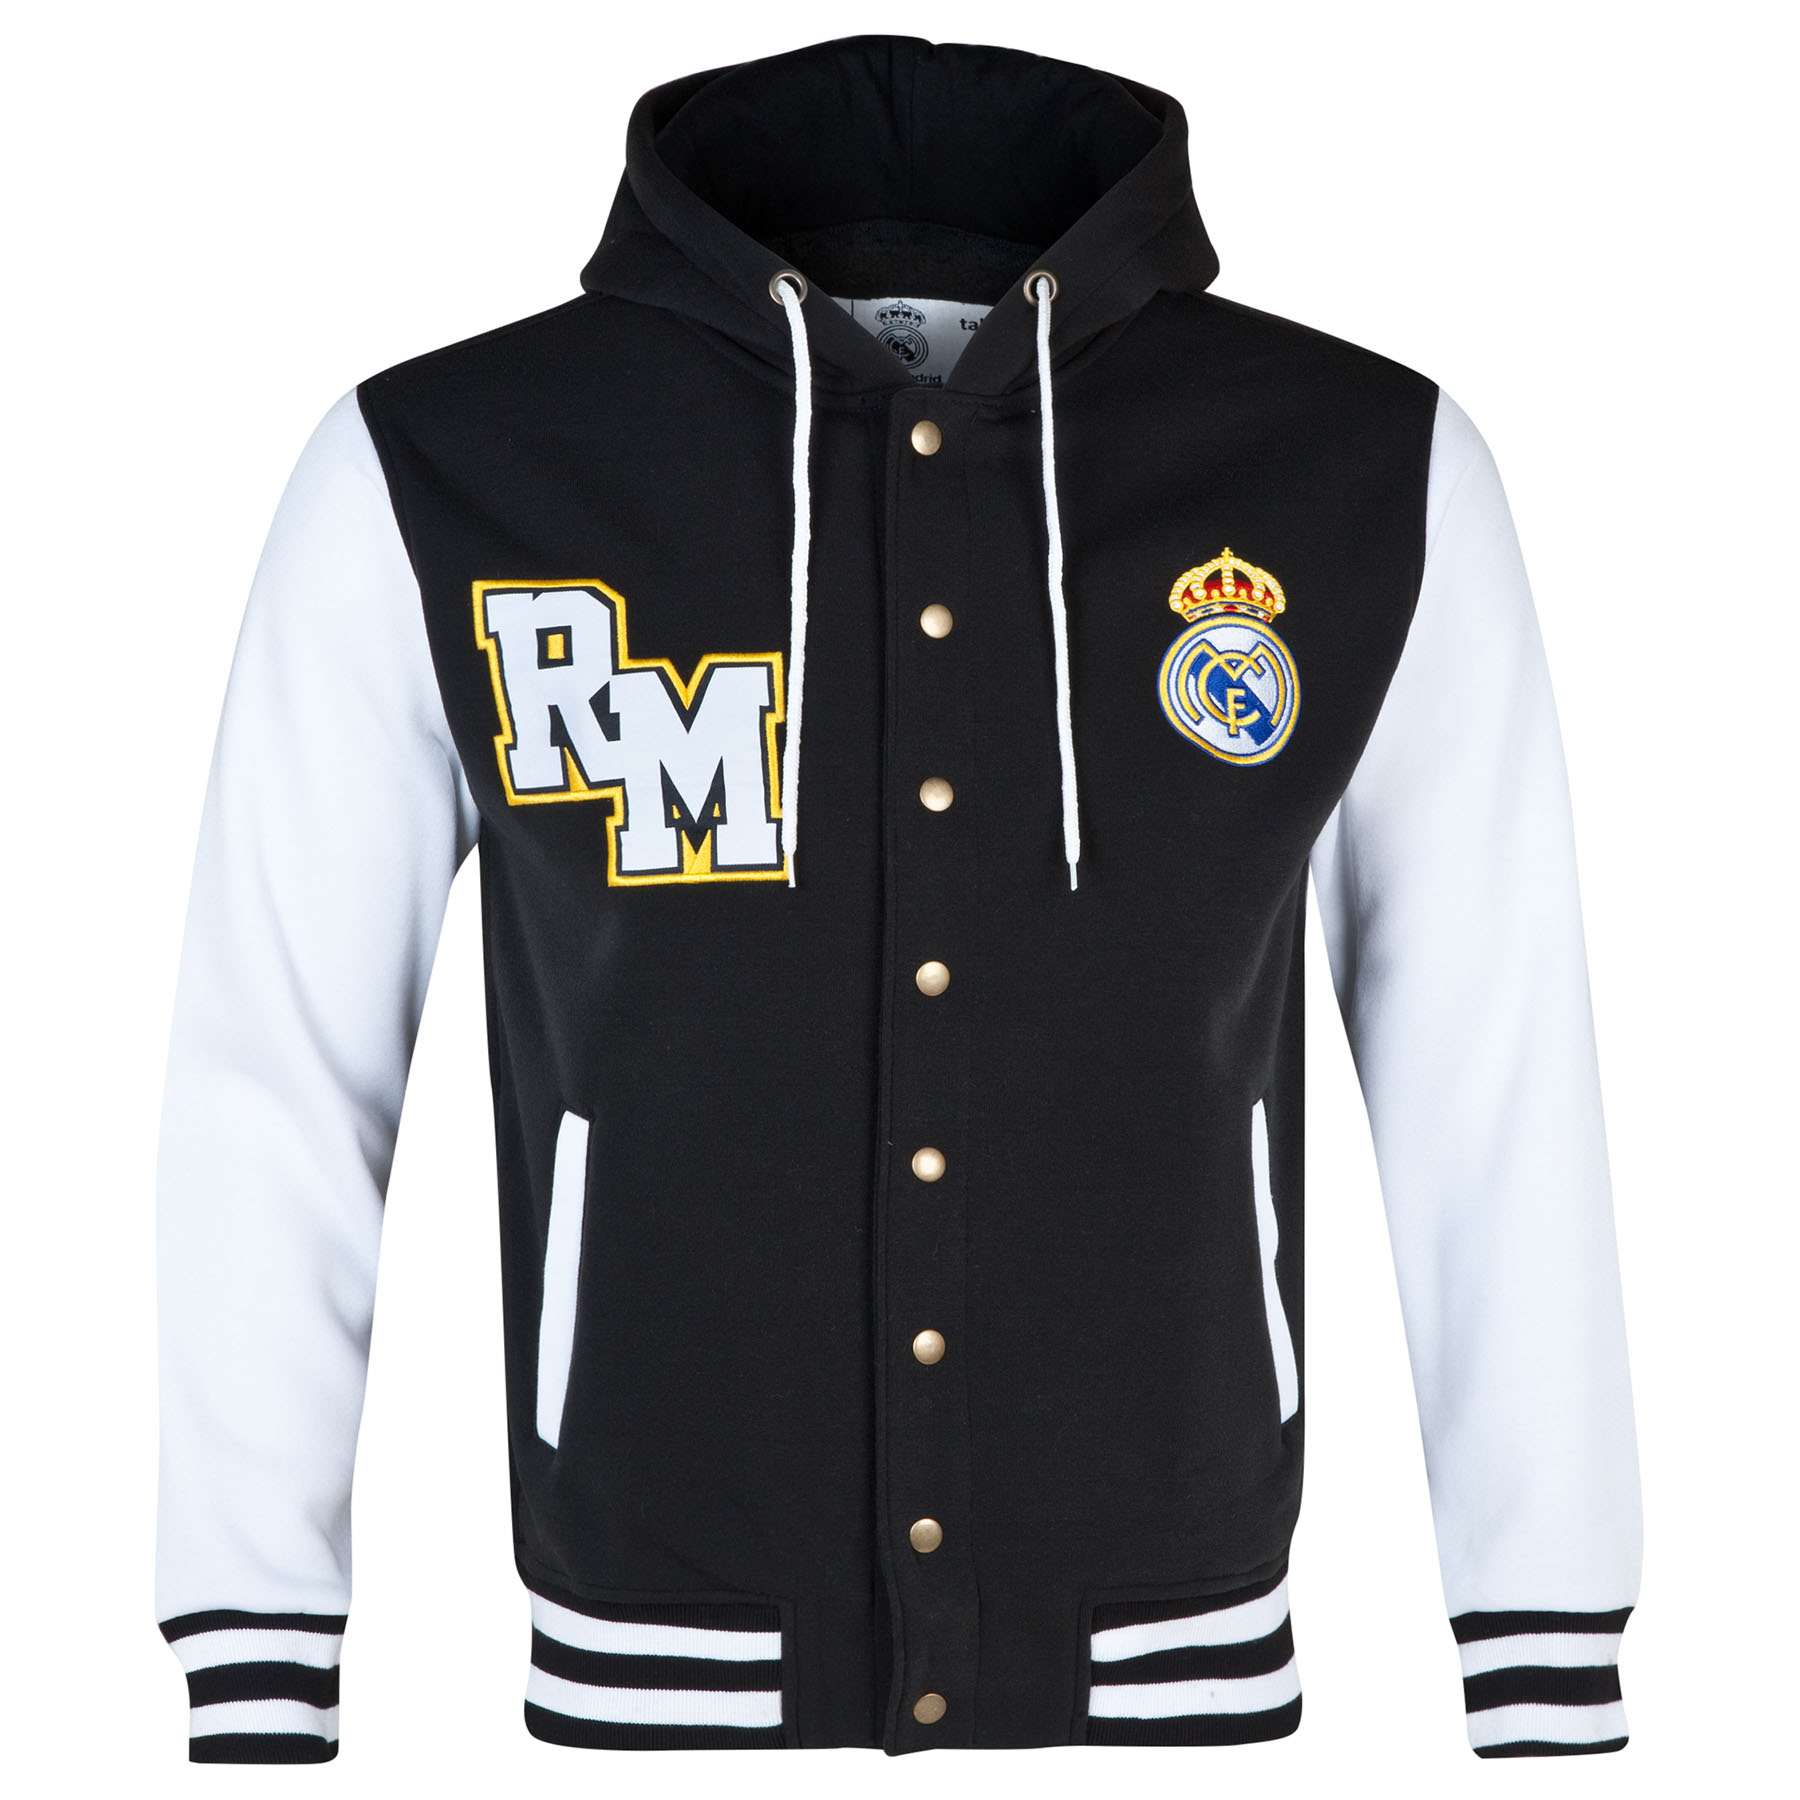 Real Madrid Baseball Jacket - Black/White - Mens